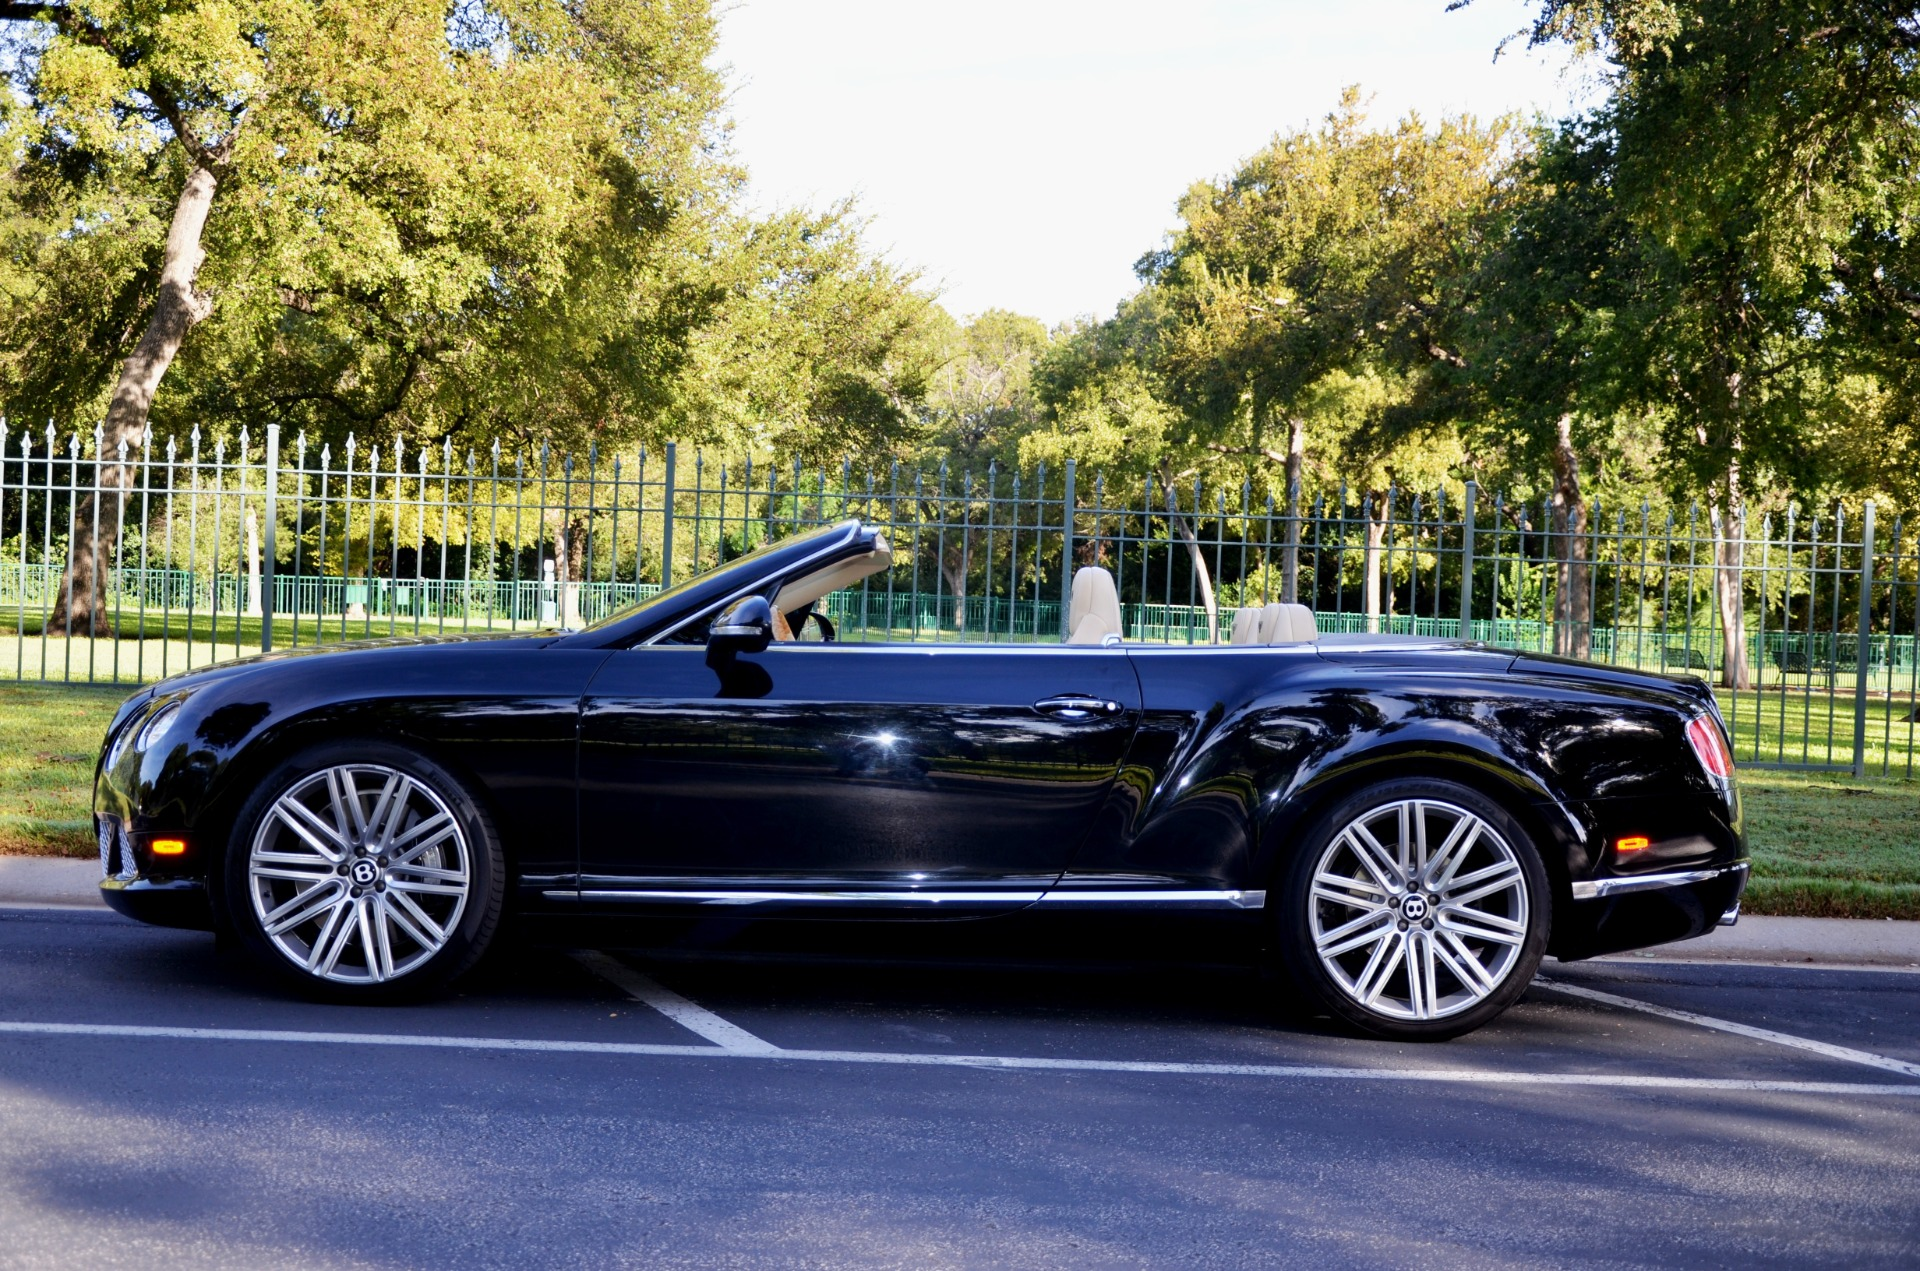 2014 Bentley Continental for sale Sold Platinum Motorcars in Dallas TX 1